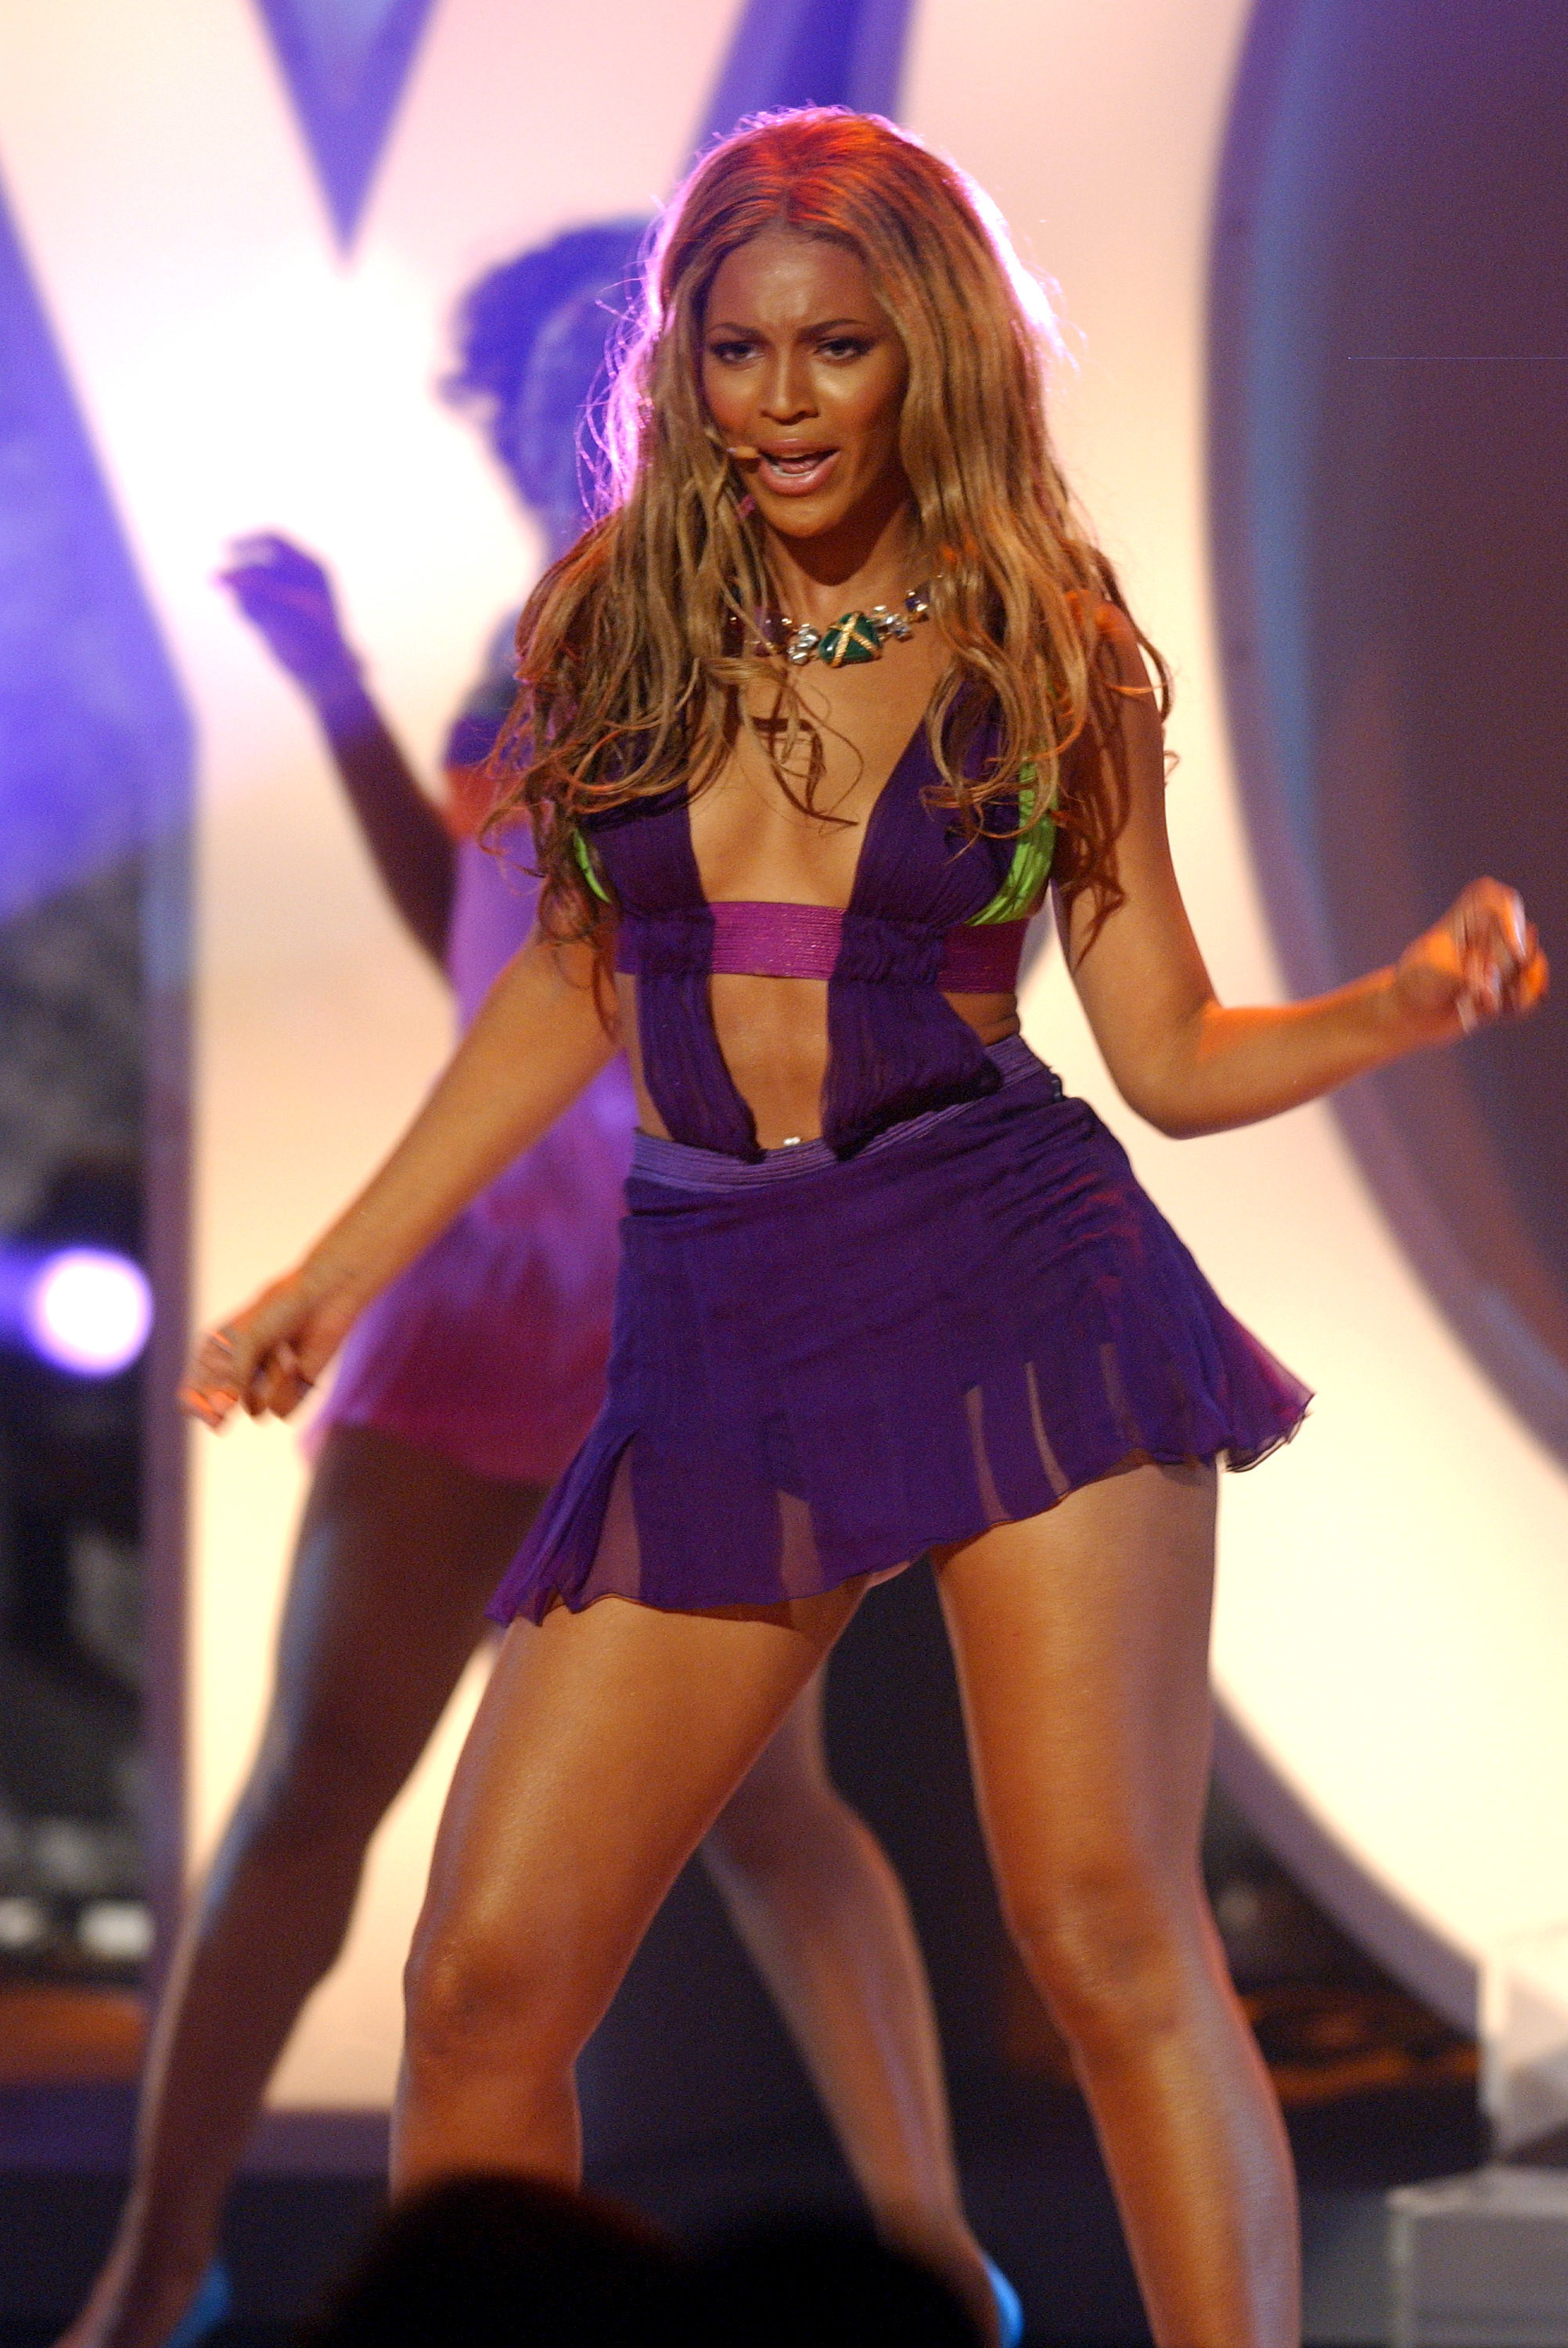 Beyonce Performs during The 3rd Annual BET Awards Show at The Kodak Theater in Hollywood, California in 2003